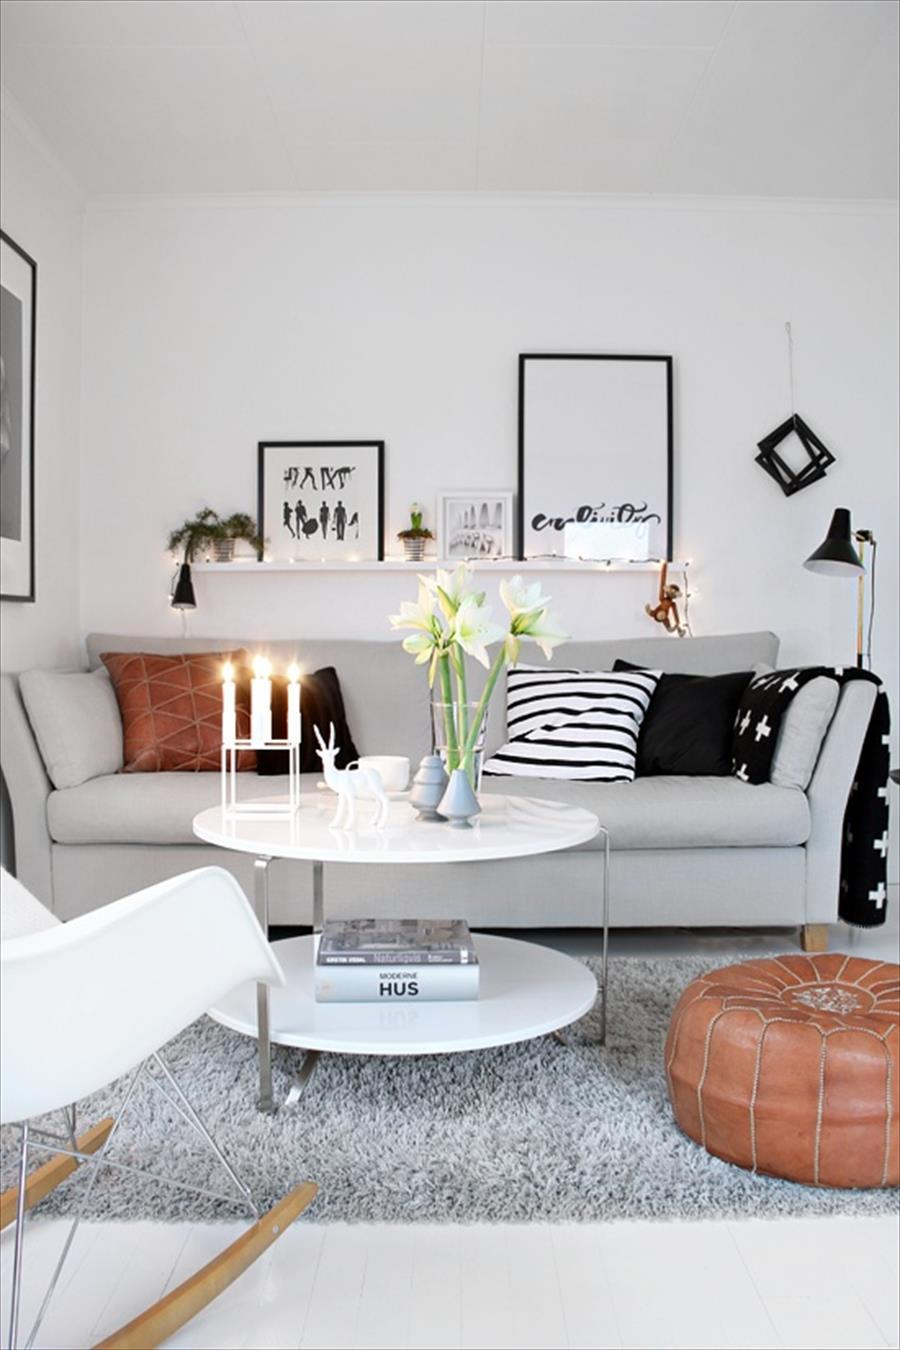 50 Best Small Living Room Design Ideas for 2016 on Decorating Small Living Room  id=91185